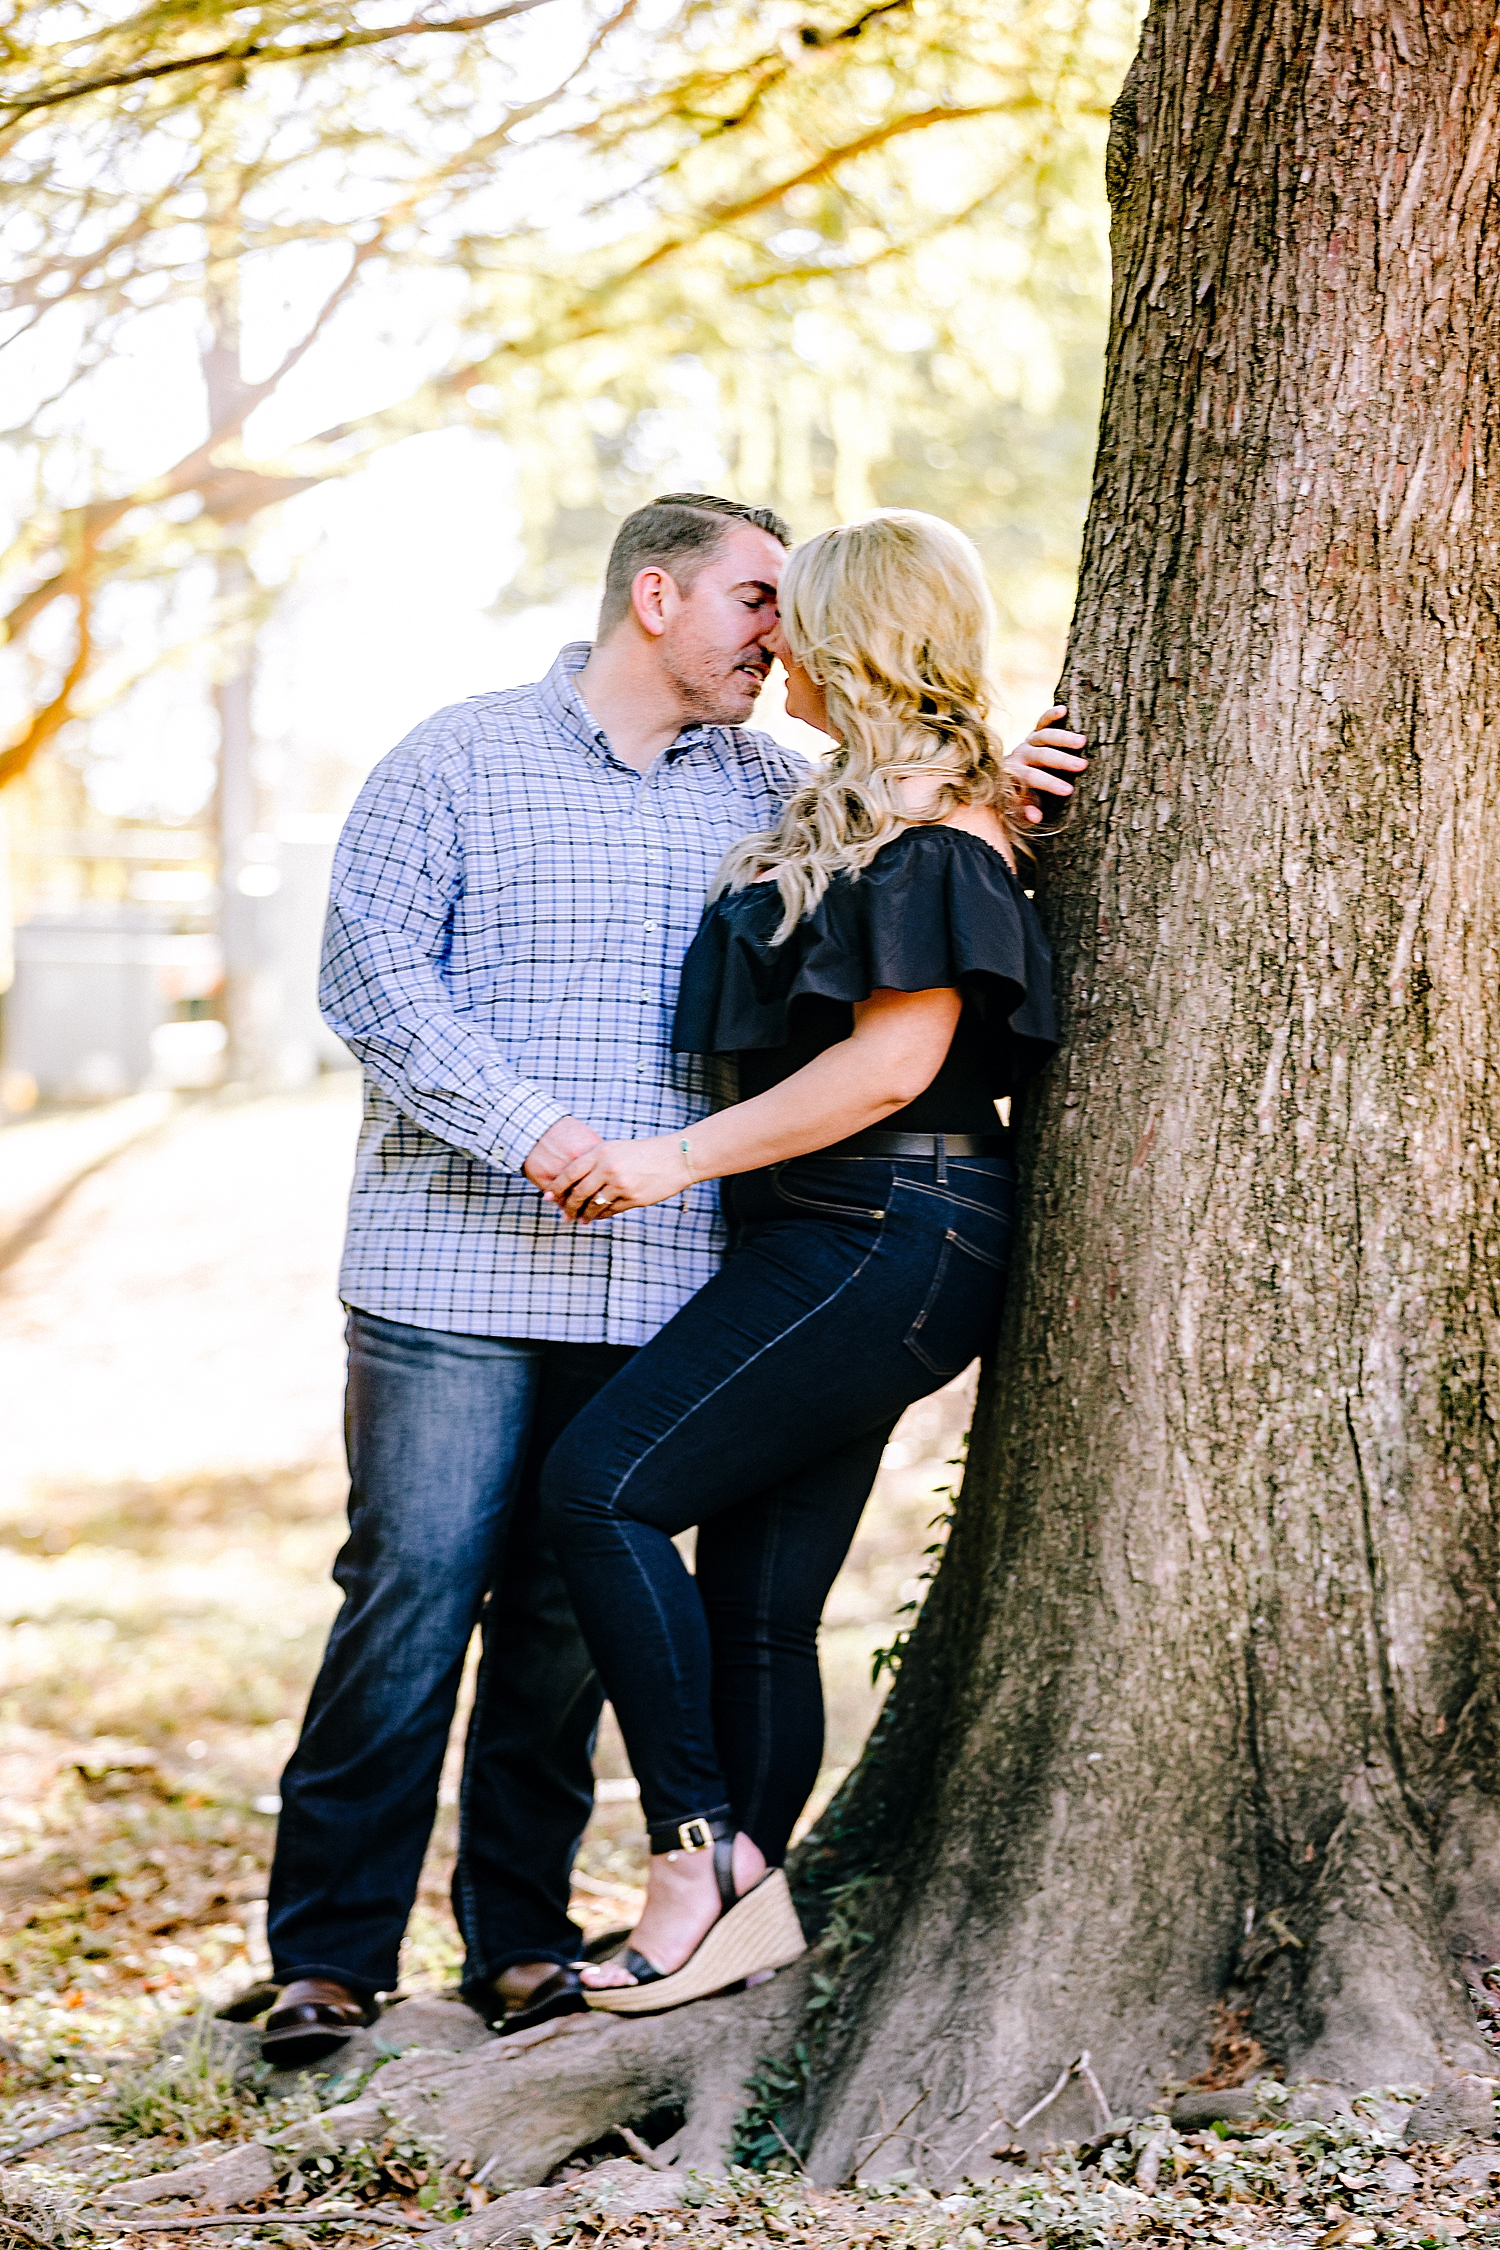 Engagement-Photo-Session-University-of-Incarnate-Word-UIW-San-Antonio-Texas-Carly-Barton-Photography_0041.jpg